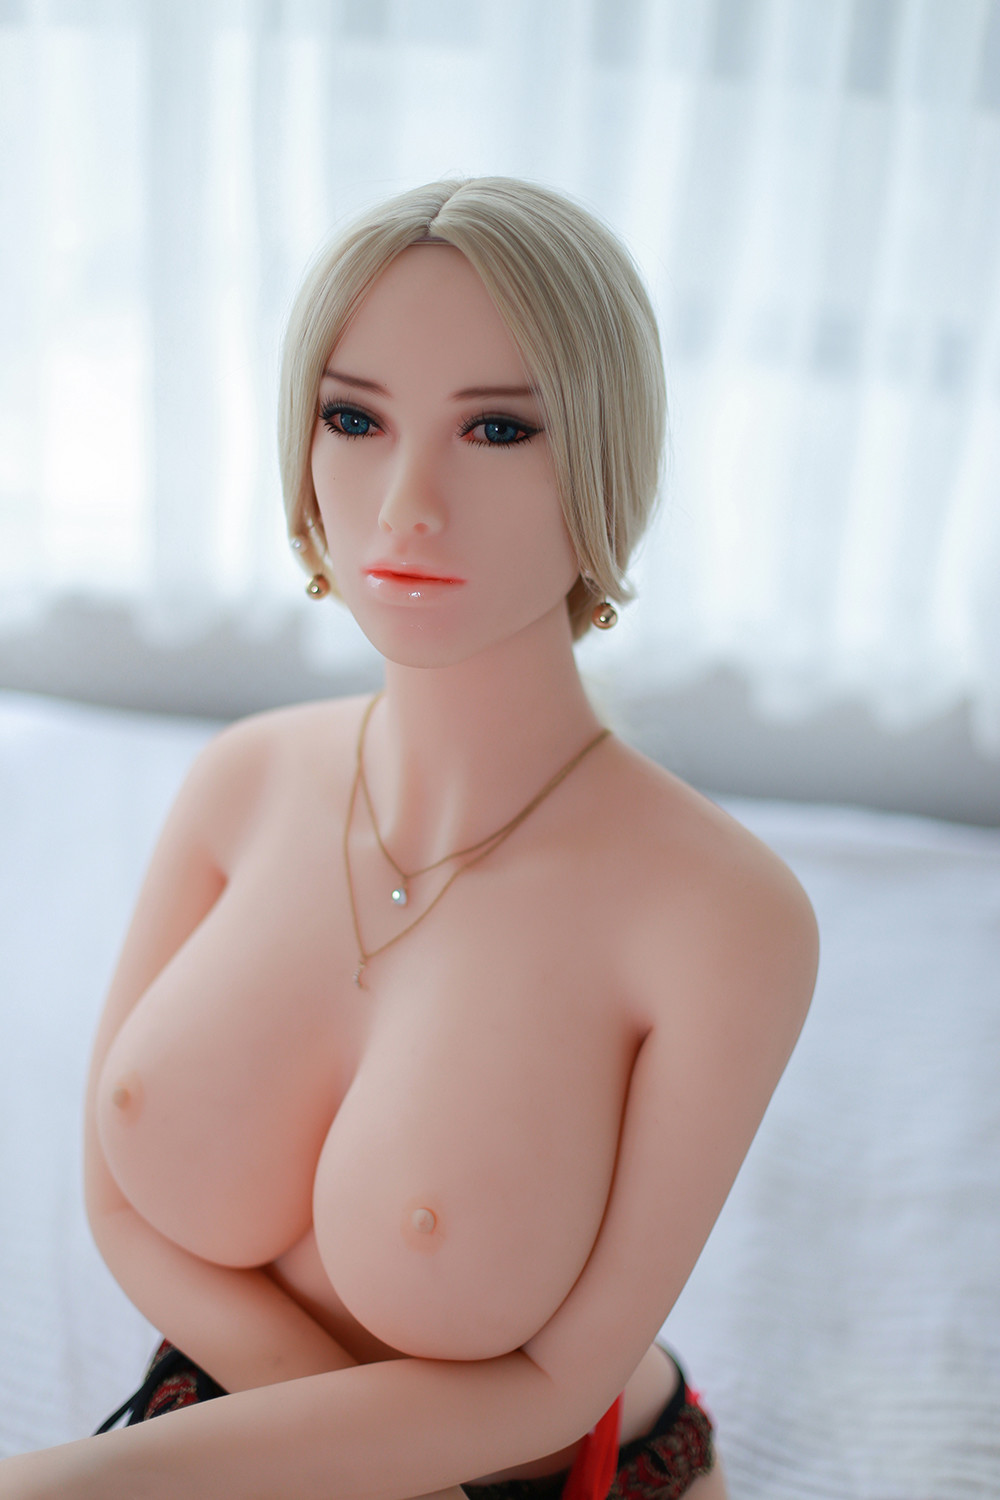 Mysterious Girl Heatable Blonde Realistic Sex Doll Body